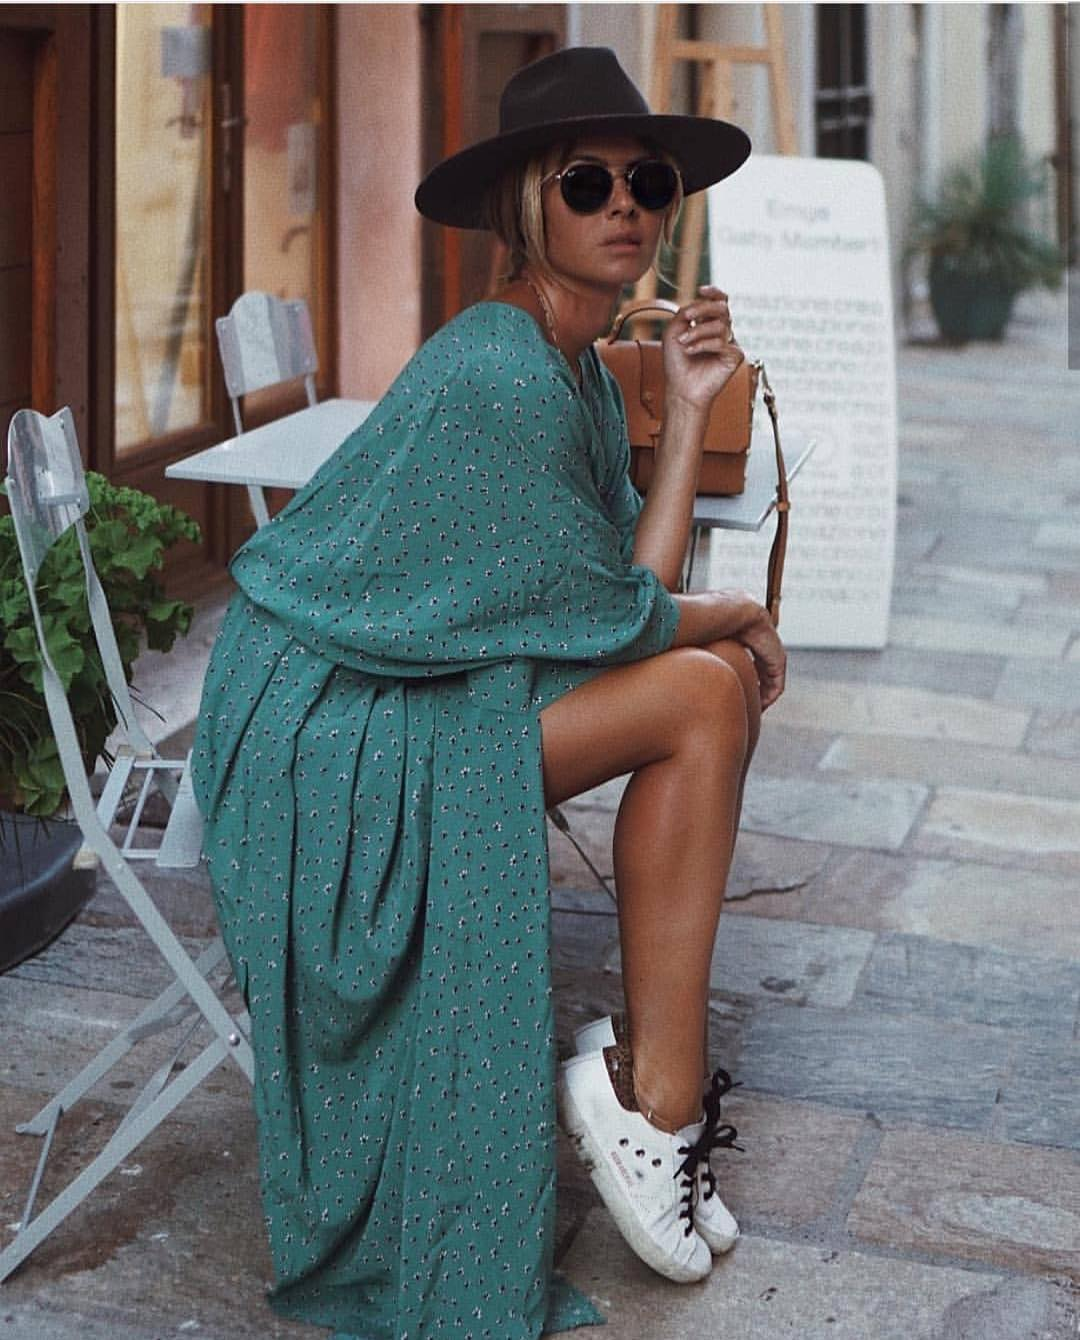 Turquoise Green Maxi Dress With White Sneakers For Summer Trips 2020